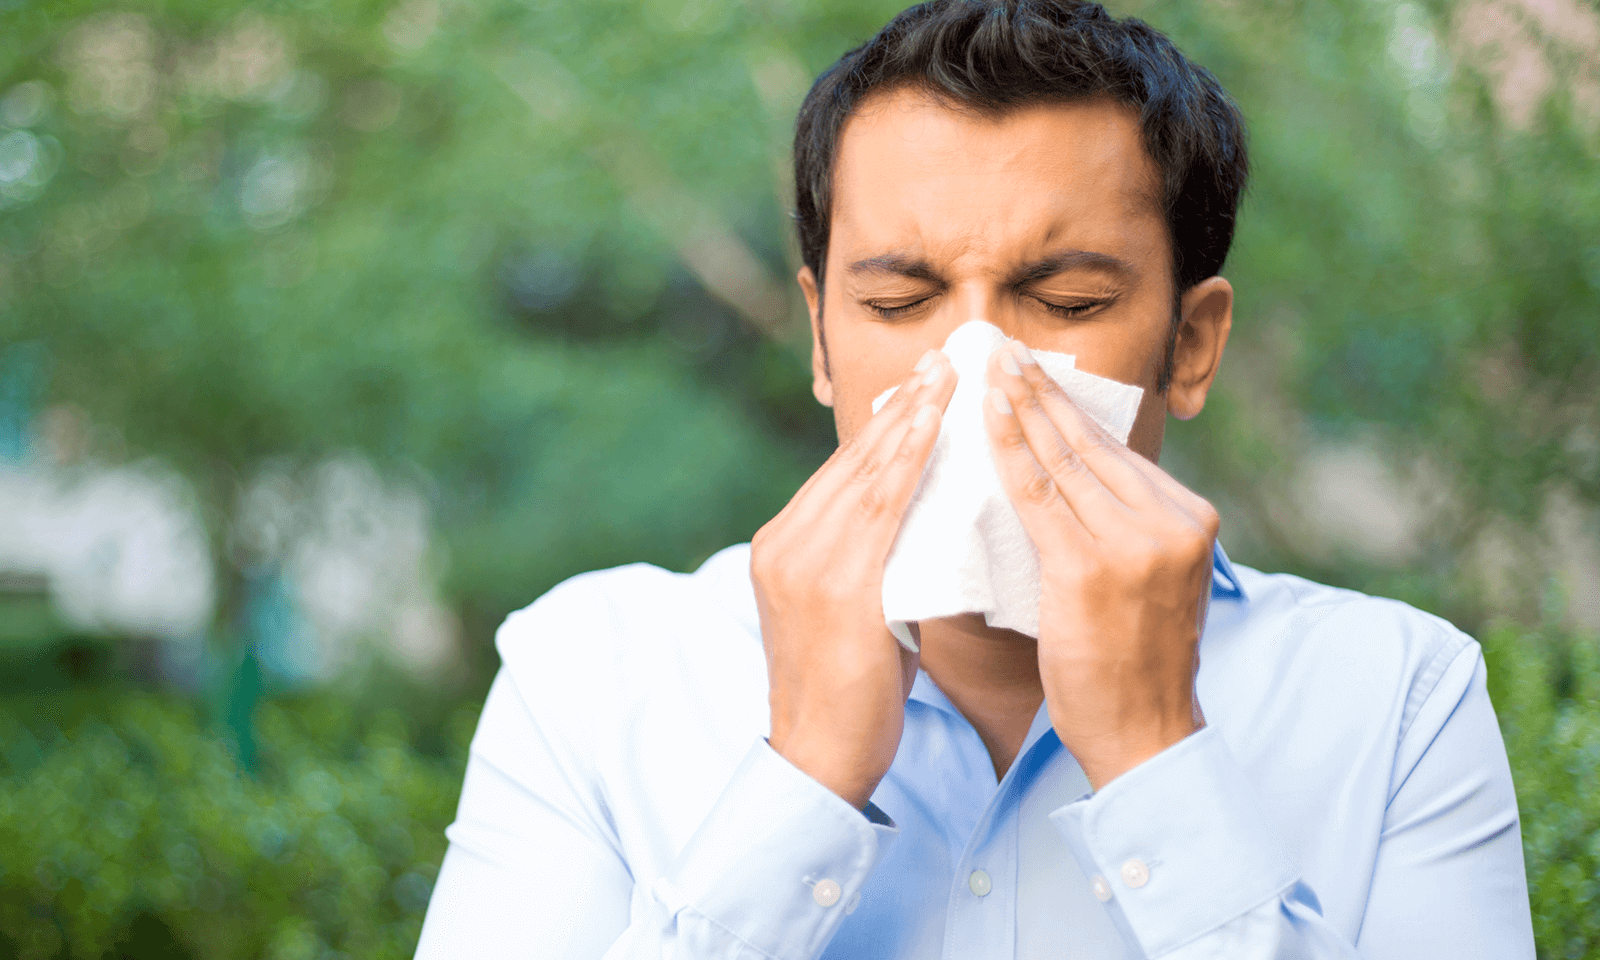 Sinusitis conditions